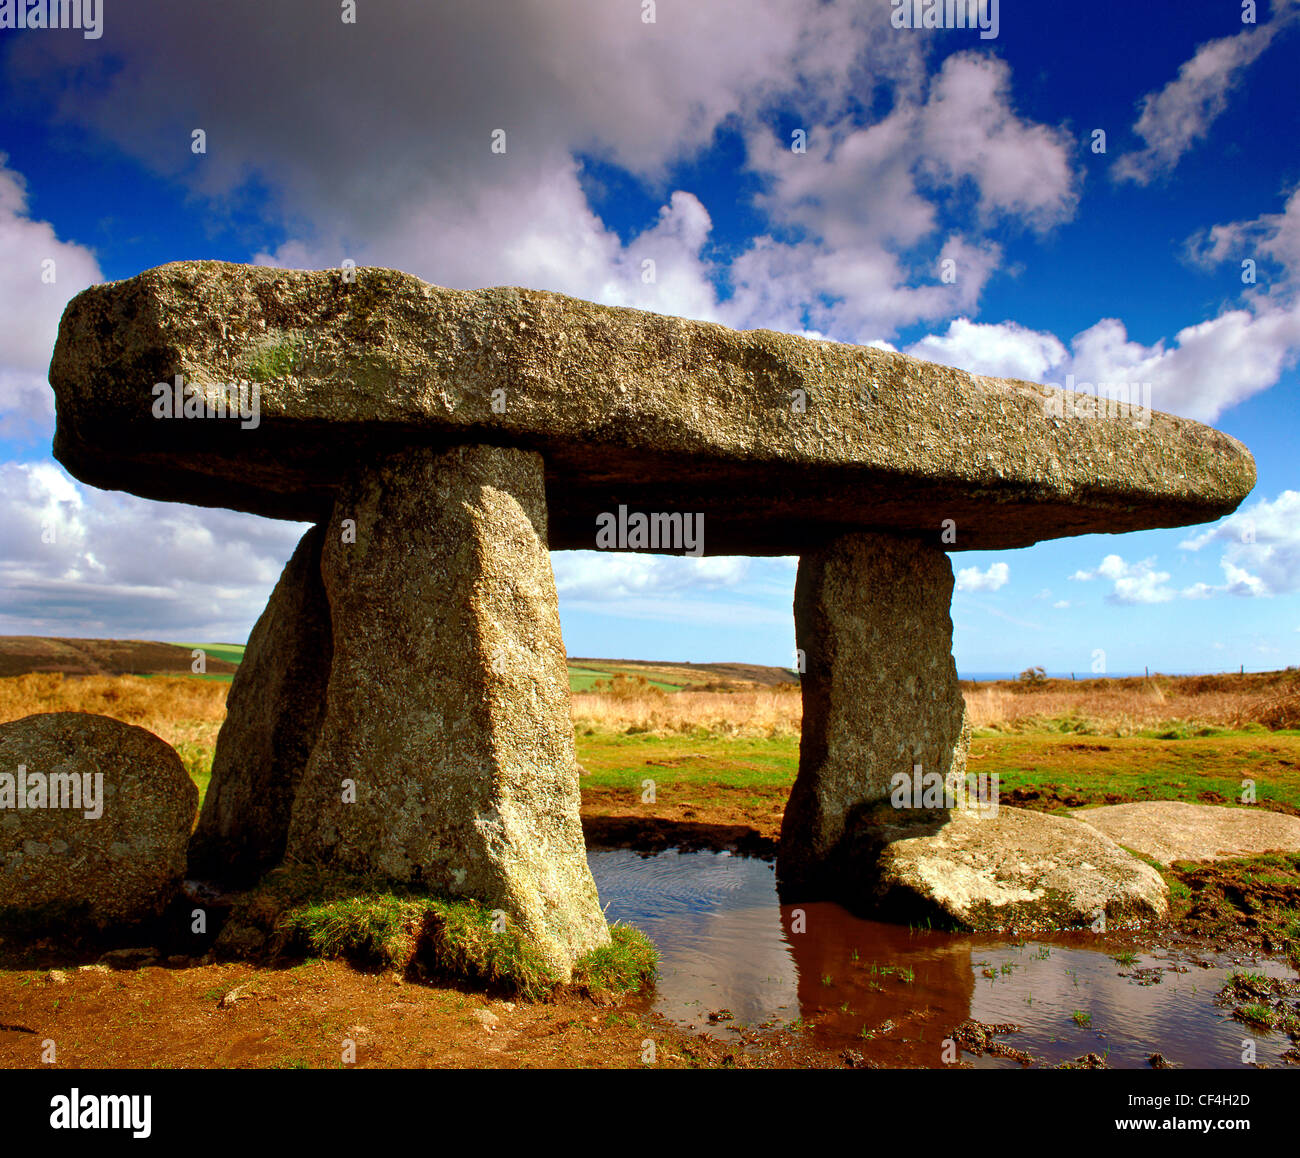 Lanyon Quoit, a neolithic chamber tomb dating from approximately 2000BC, between Madron and Trevowhan. - Stock Image